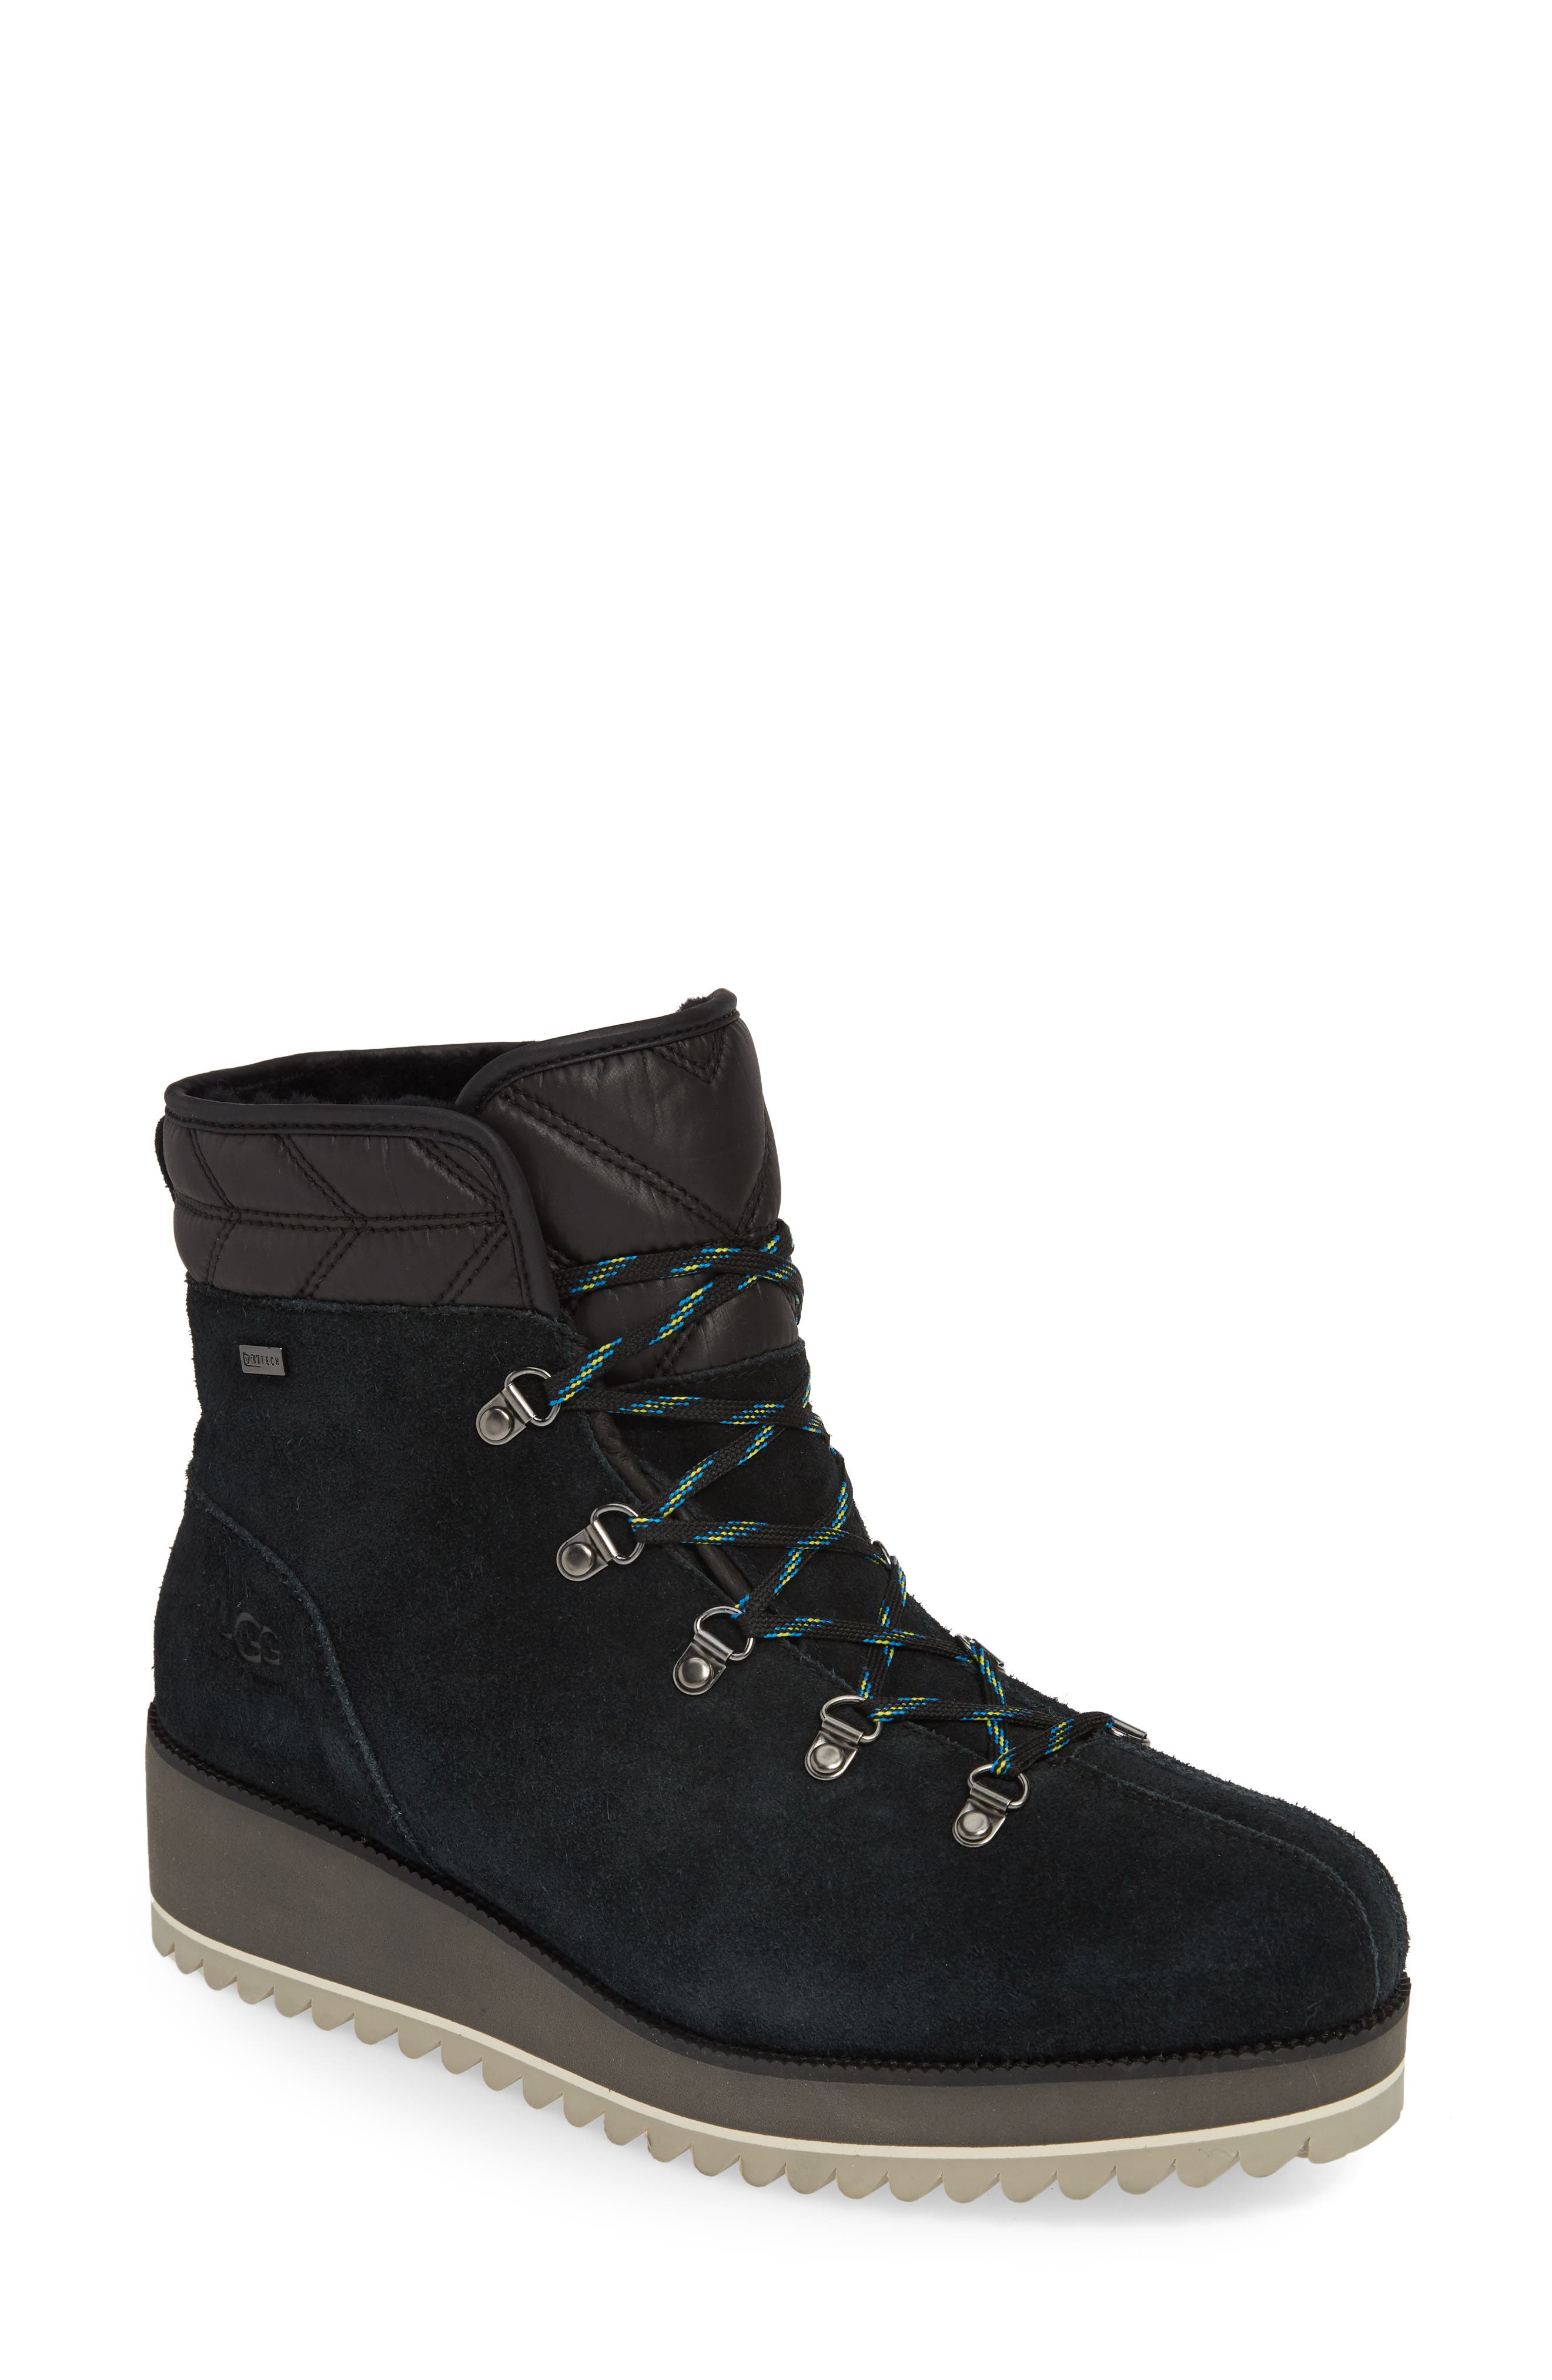 UGG<SUP>®</SUP> Birch Waterproof Lace-Up Winter Bootie, Main, color, BLACK